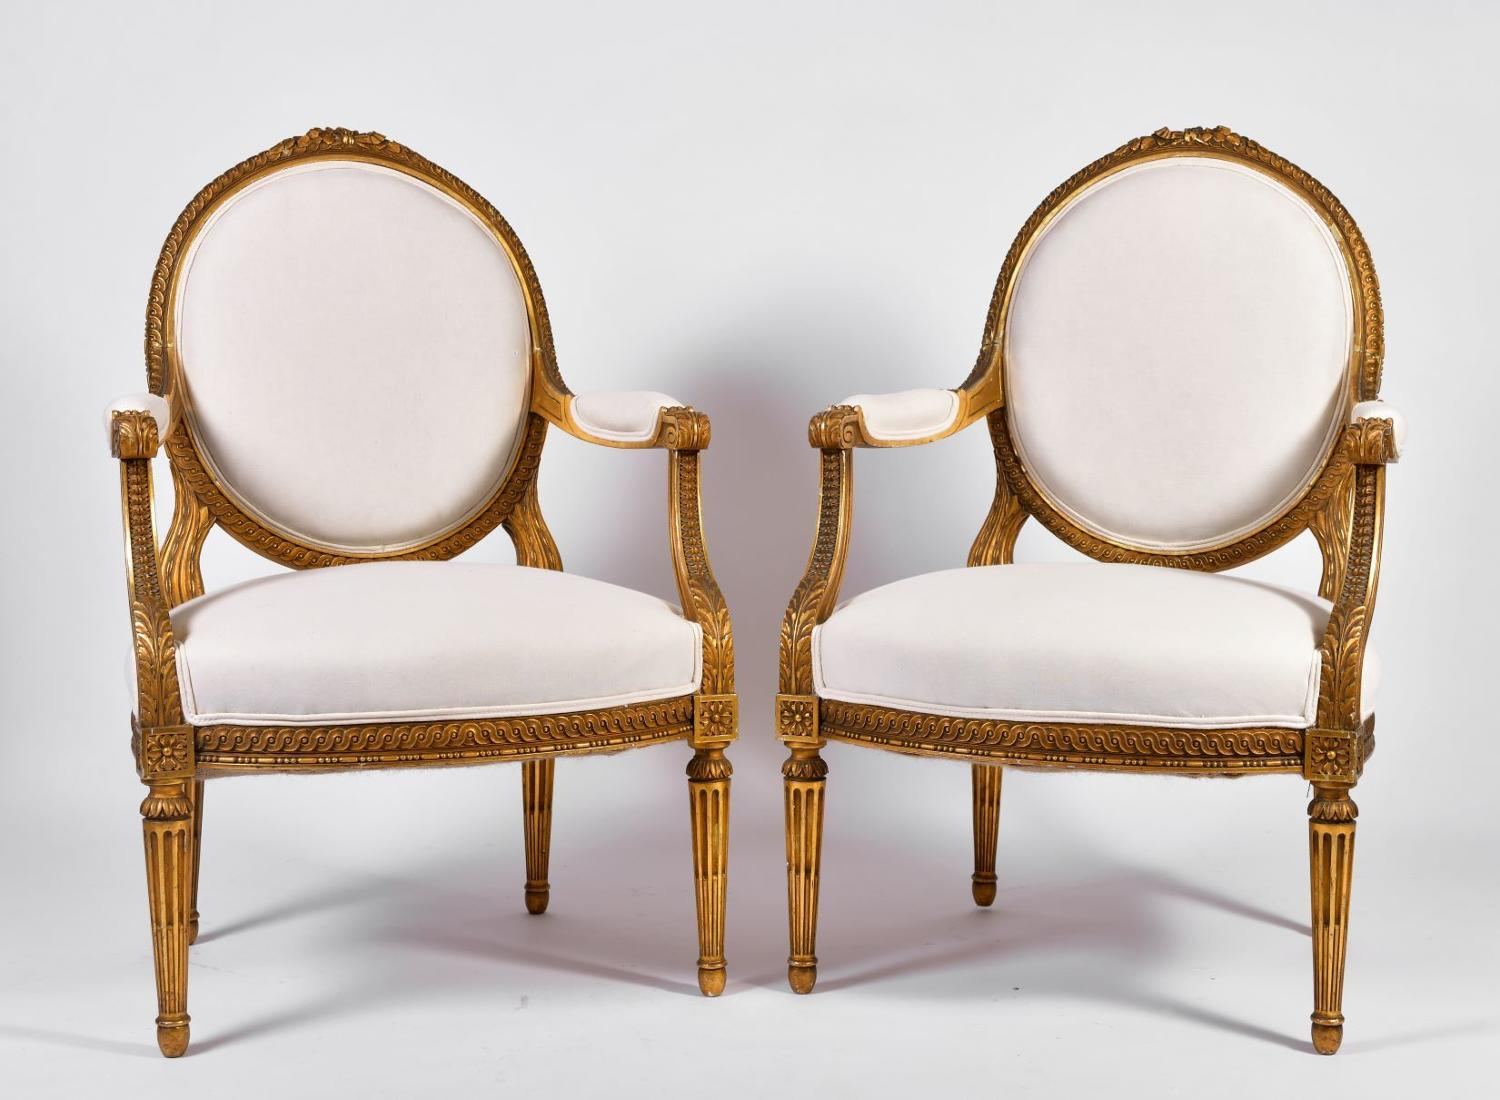 A set of four oval back Louis XVI style armchairs